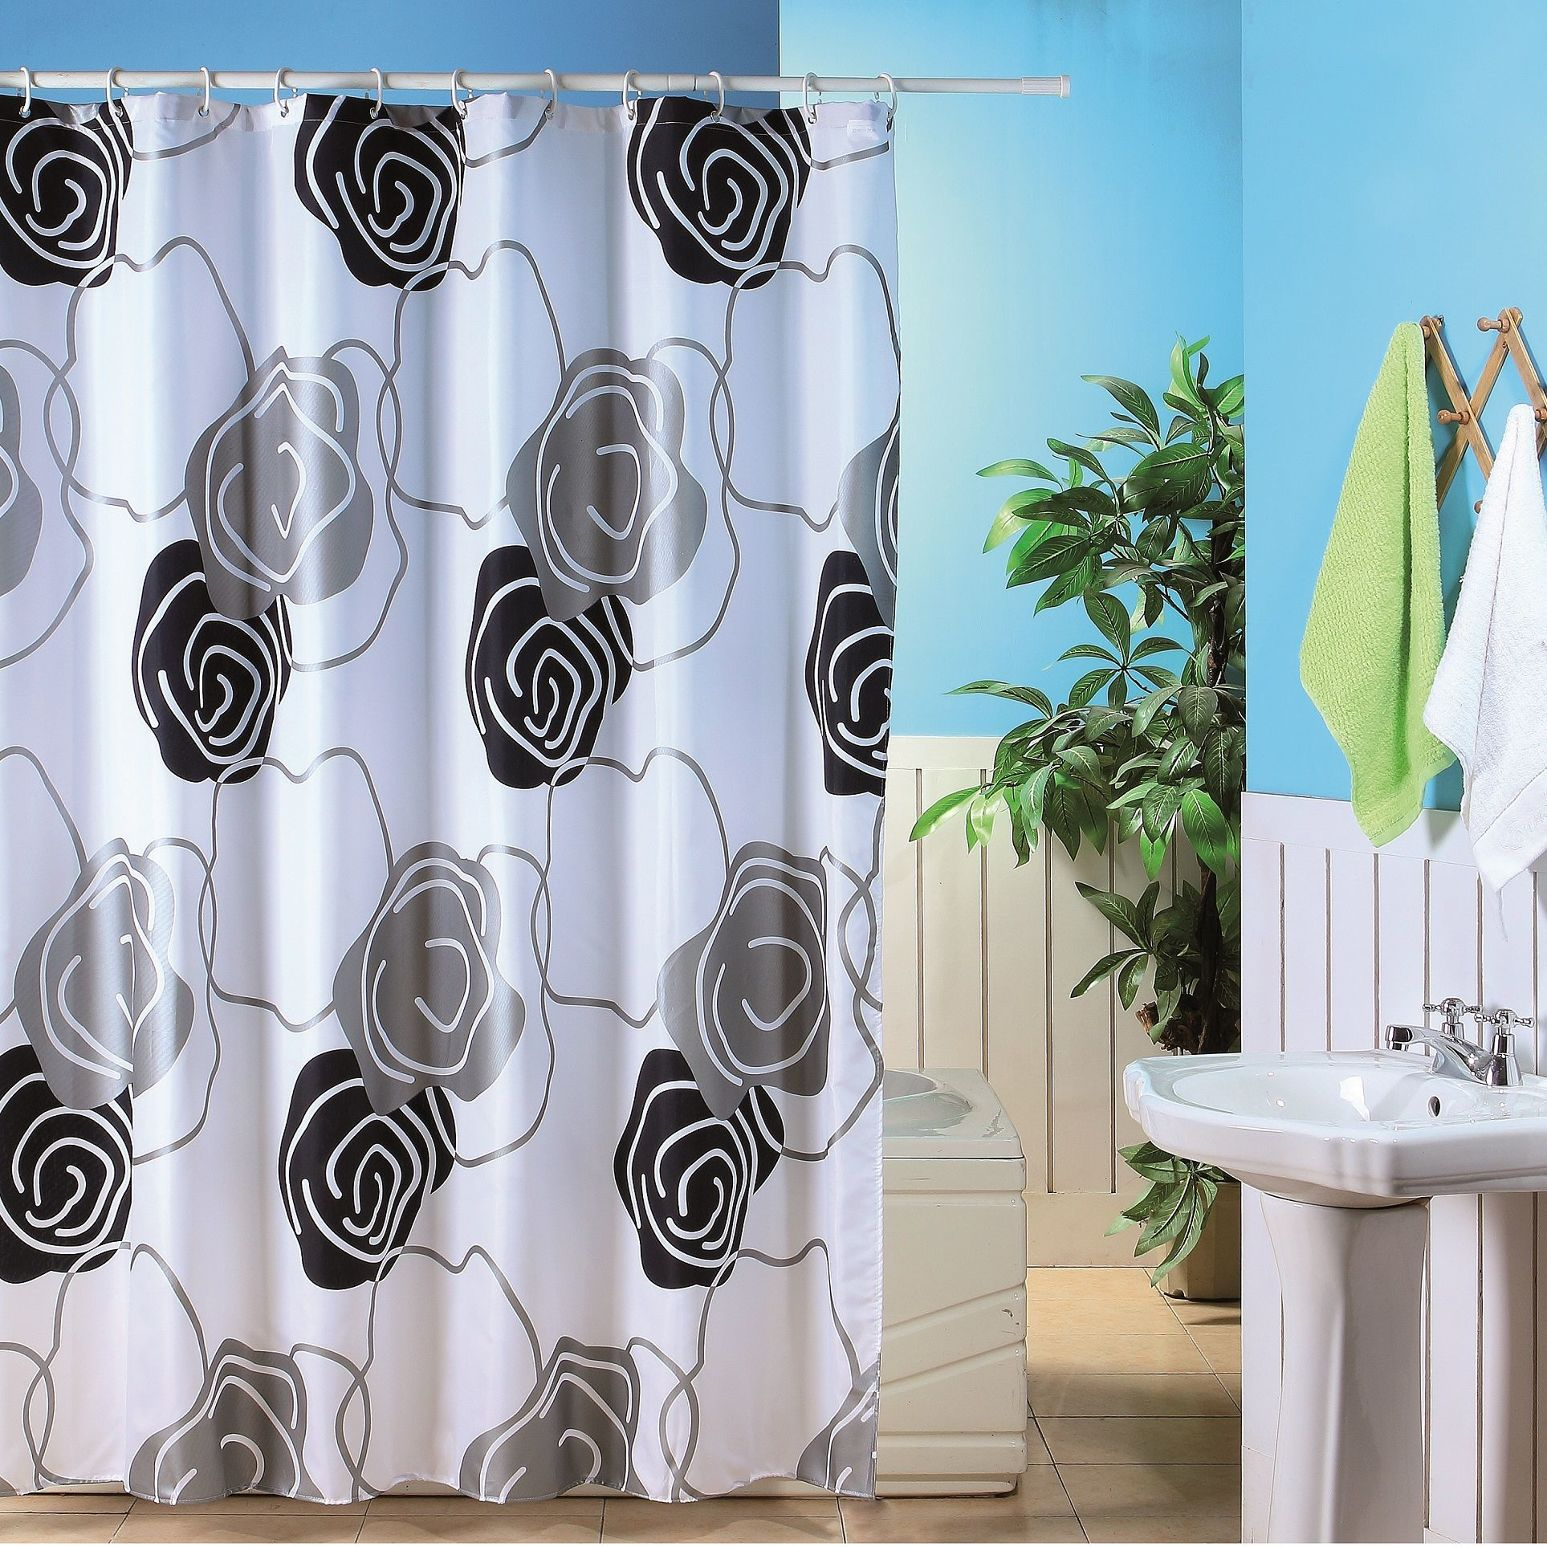 Metallic Flower Shower Curtain